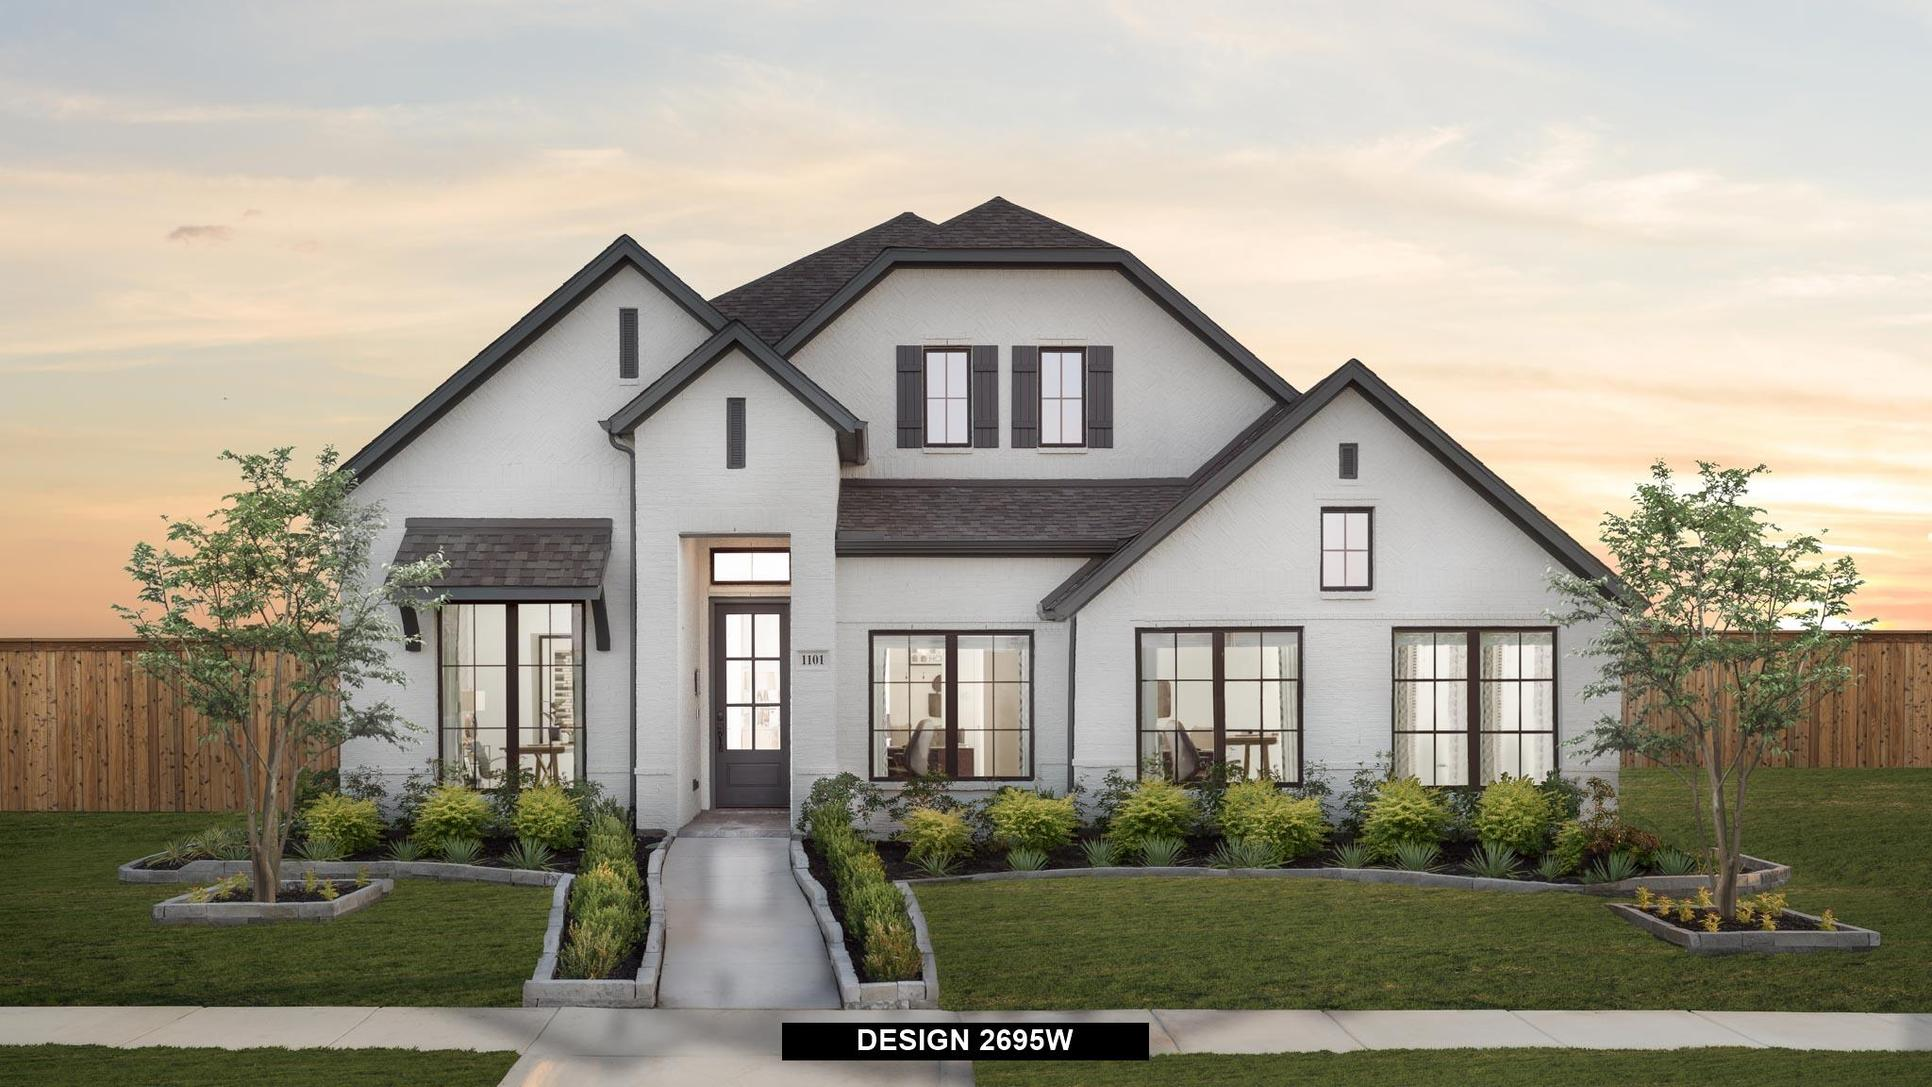 Plan 2695W:Representative photo.  Features and specifications may vary by community.